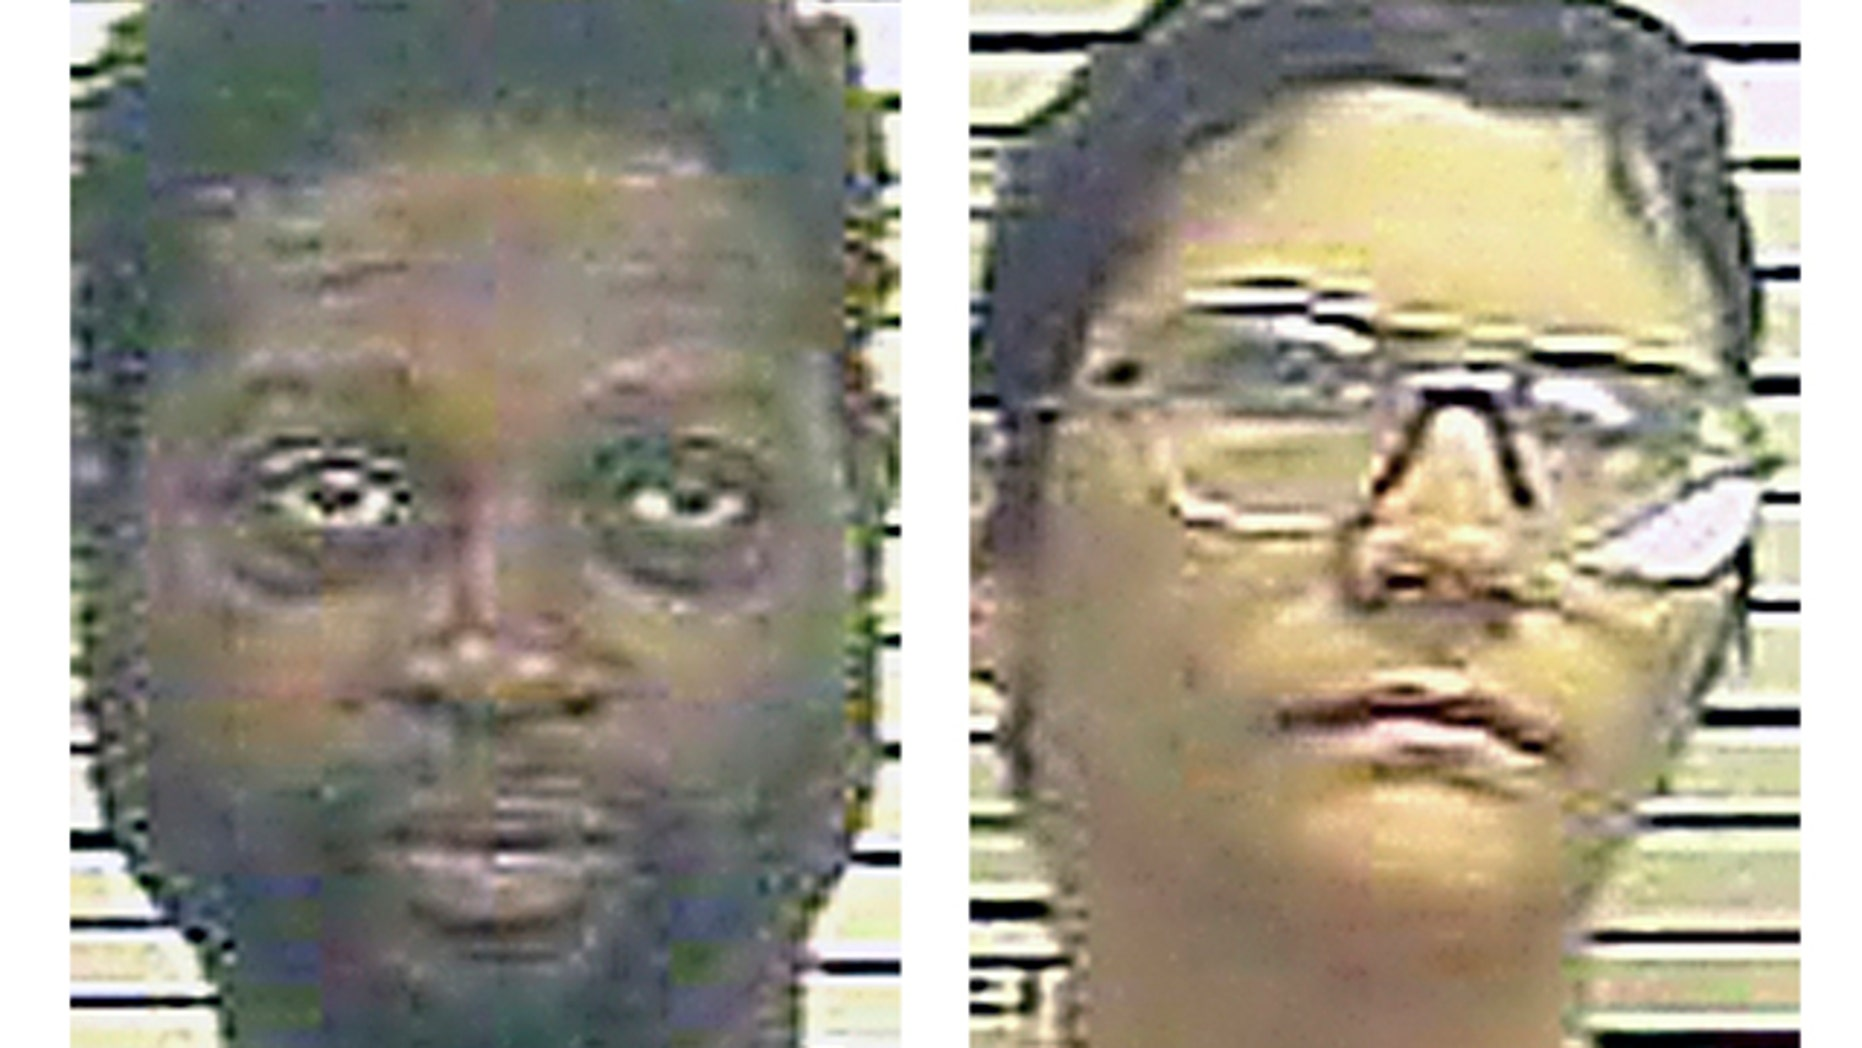 This undated two file photo combo provided by York County Prison via the York Dispatch shows Sinhue A. Johnson, left, and Louann E. Bowers.